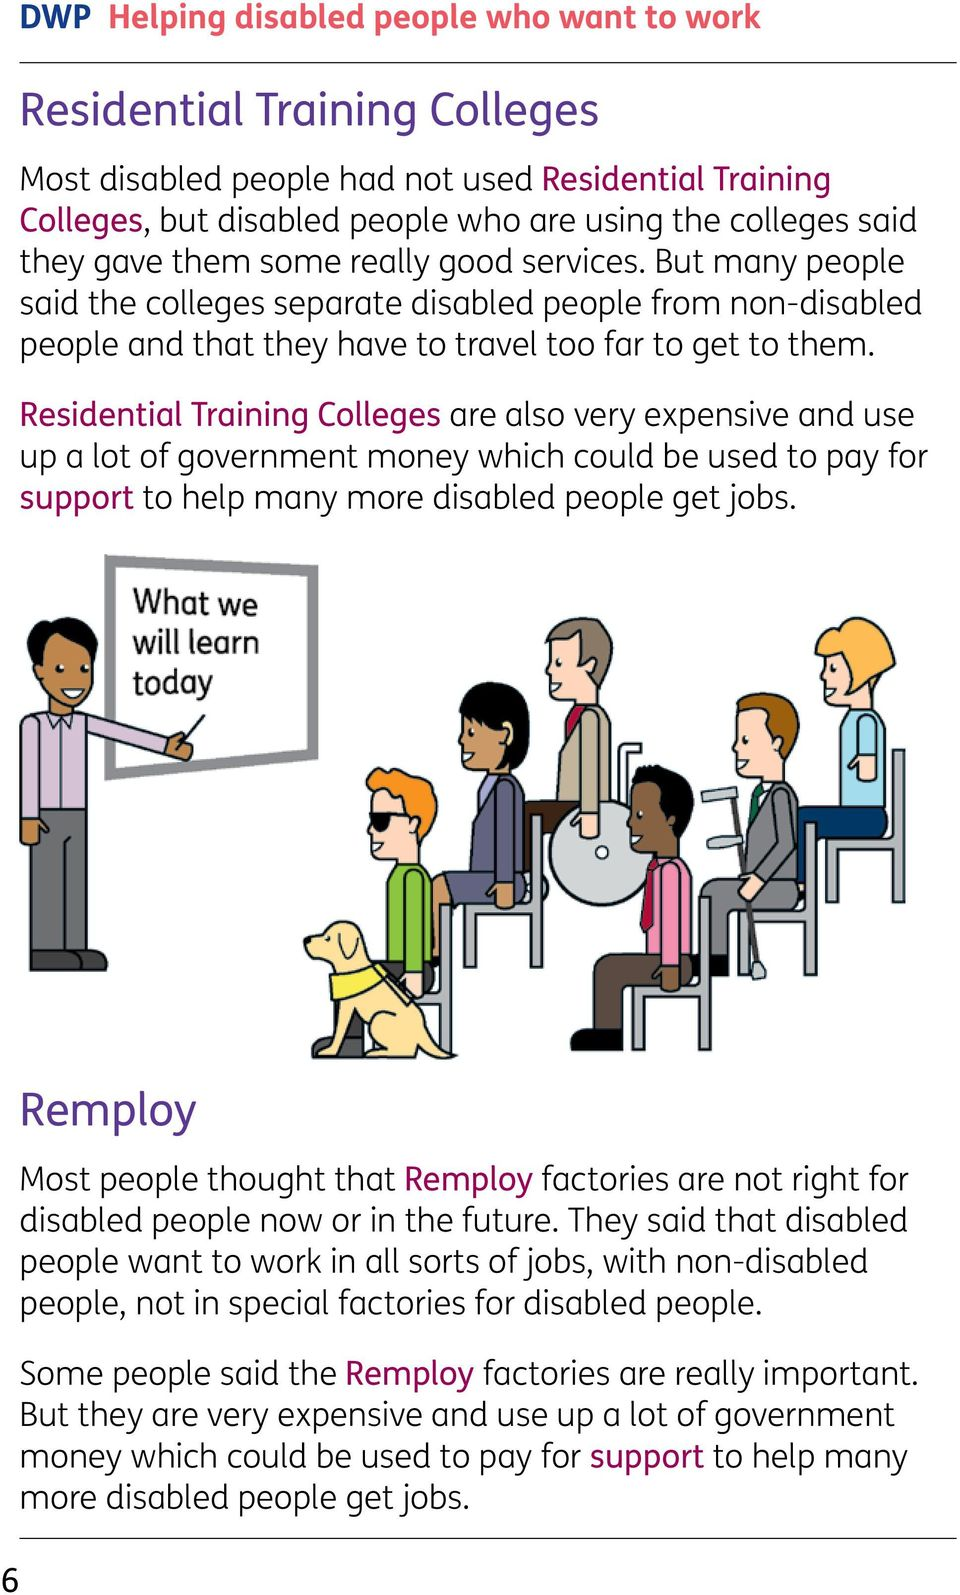 Residential Training Colleges are also very expensive and use up a lot of government money which could be used to pay for support to help many more disabled people get jobs.